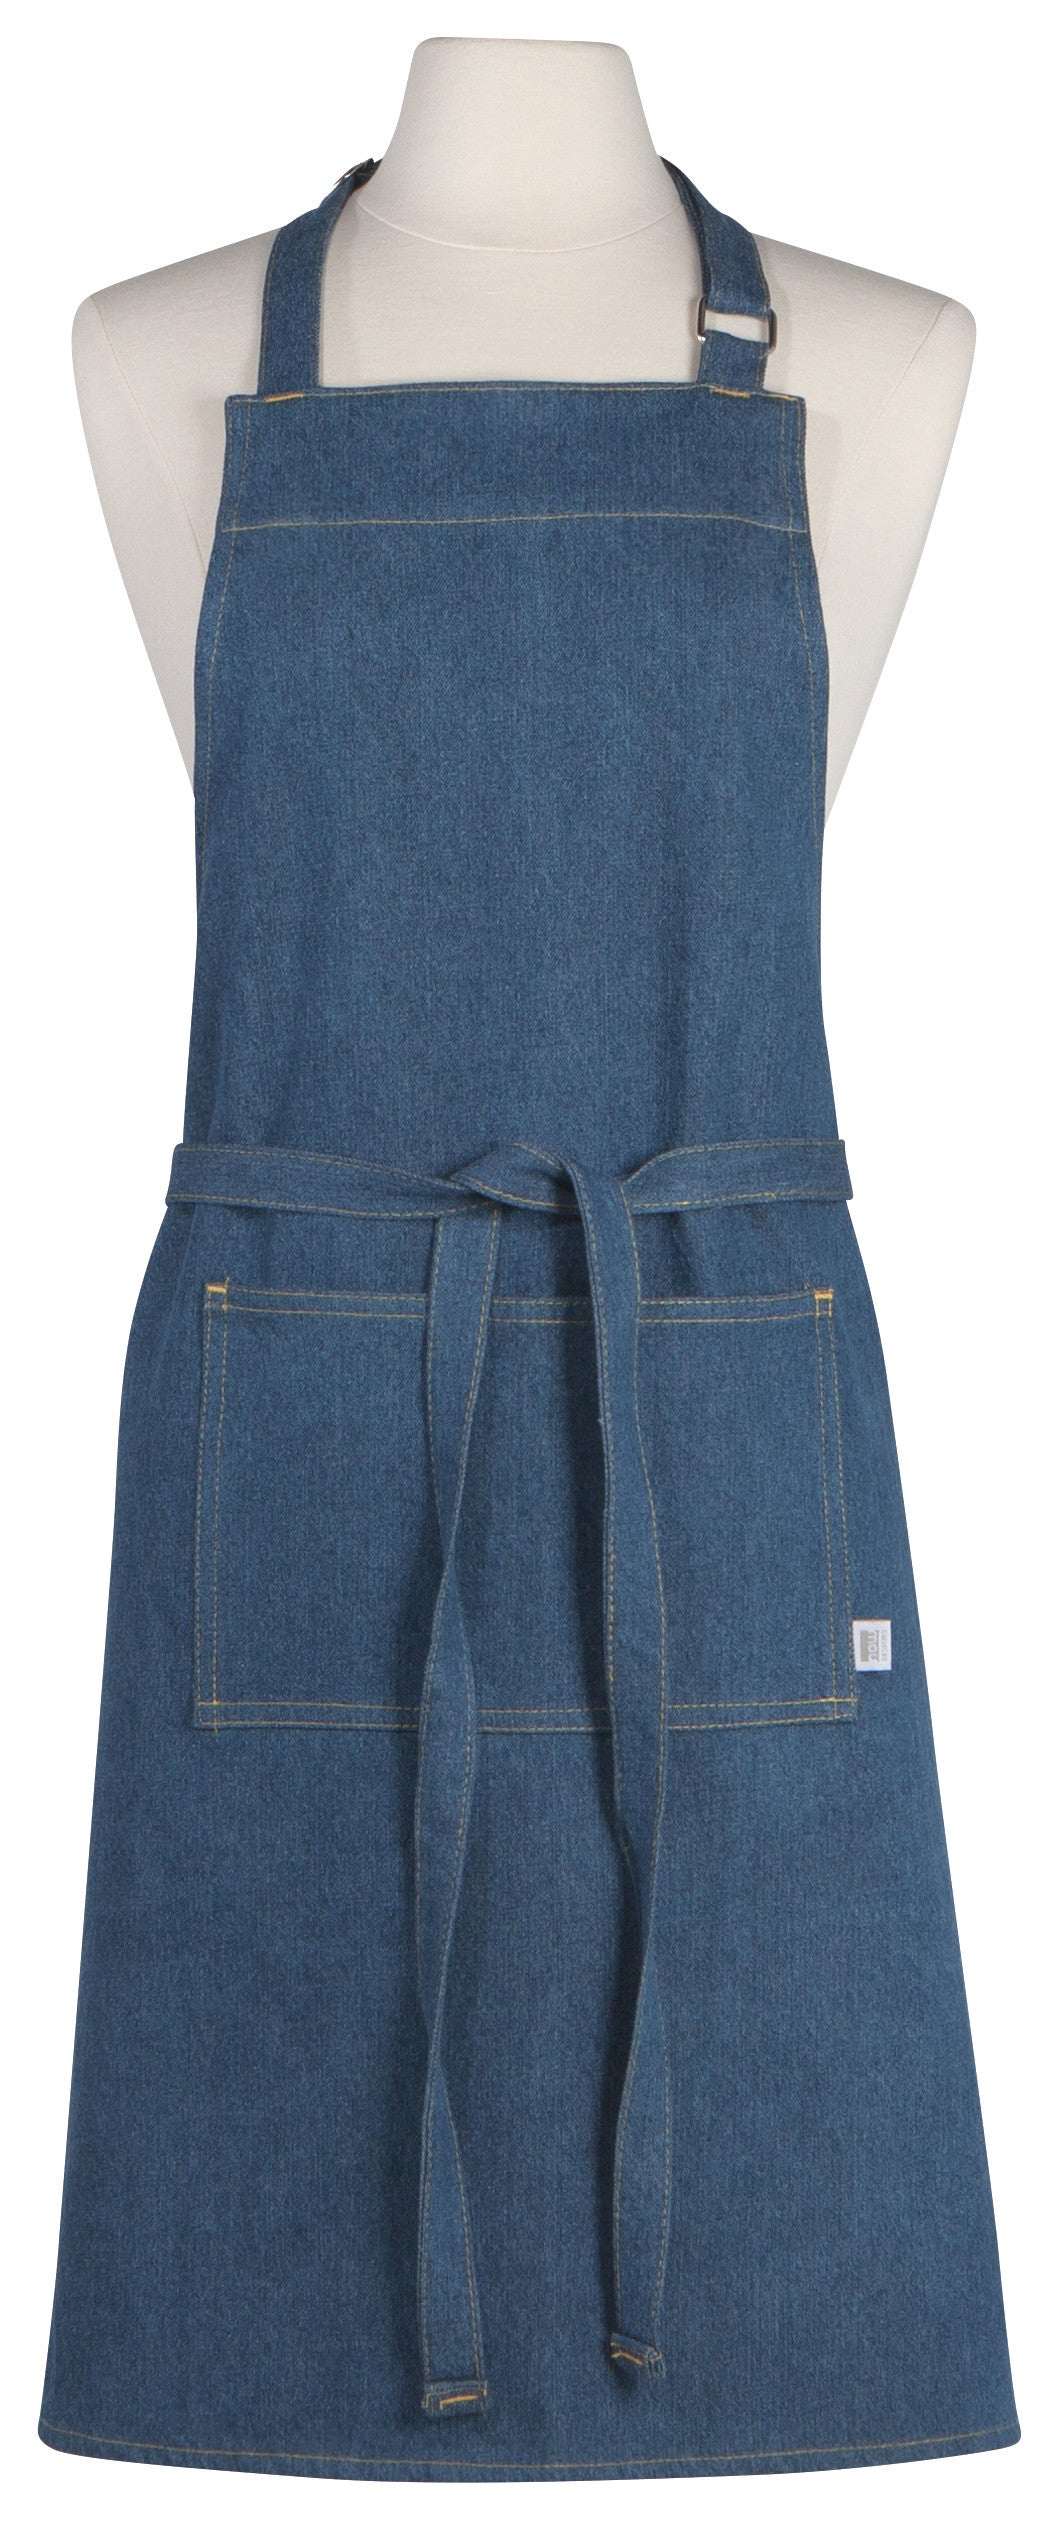 Chef Apron - Denim Stone Wash